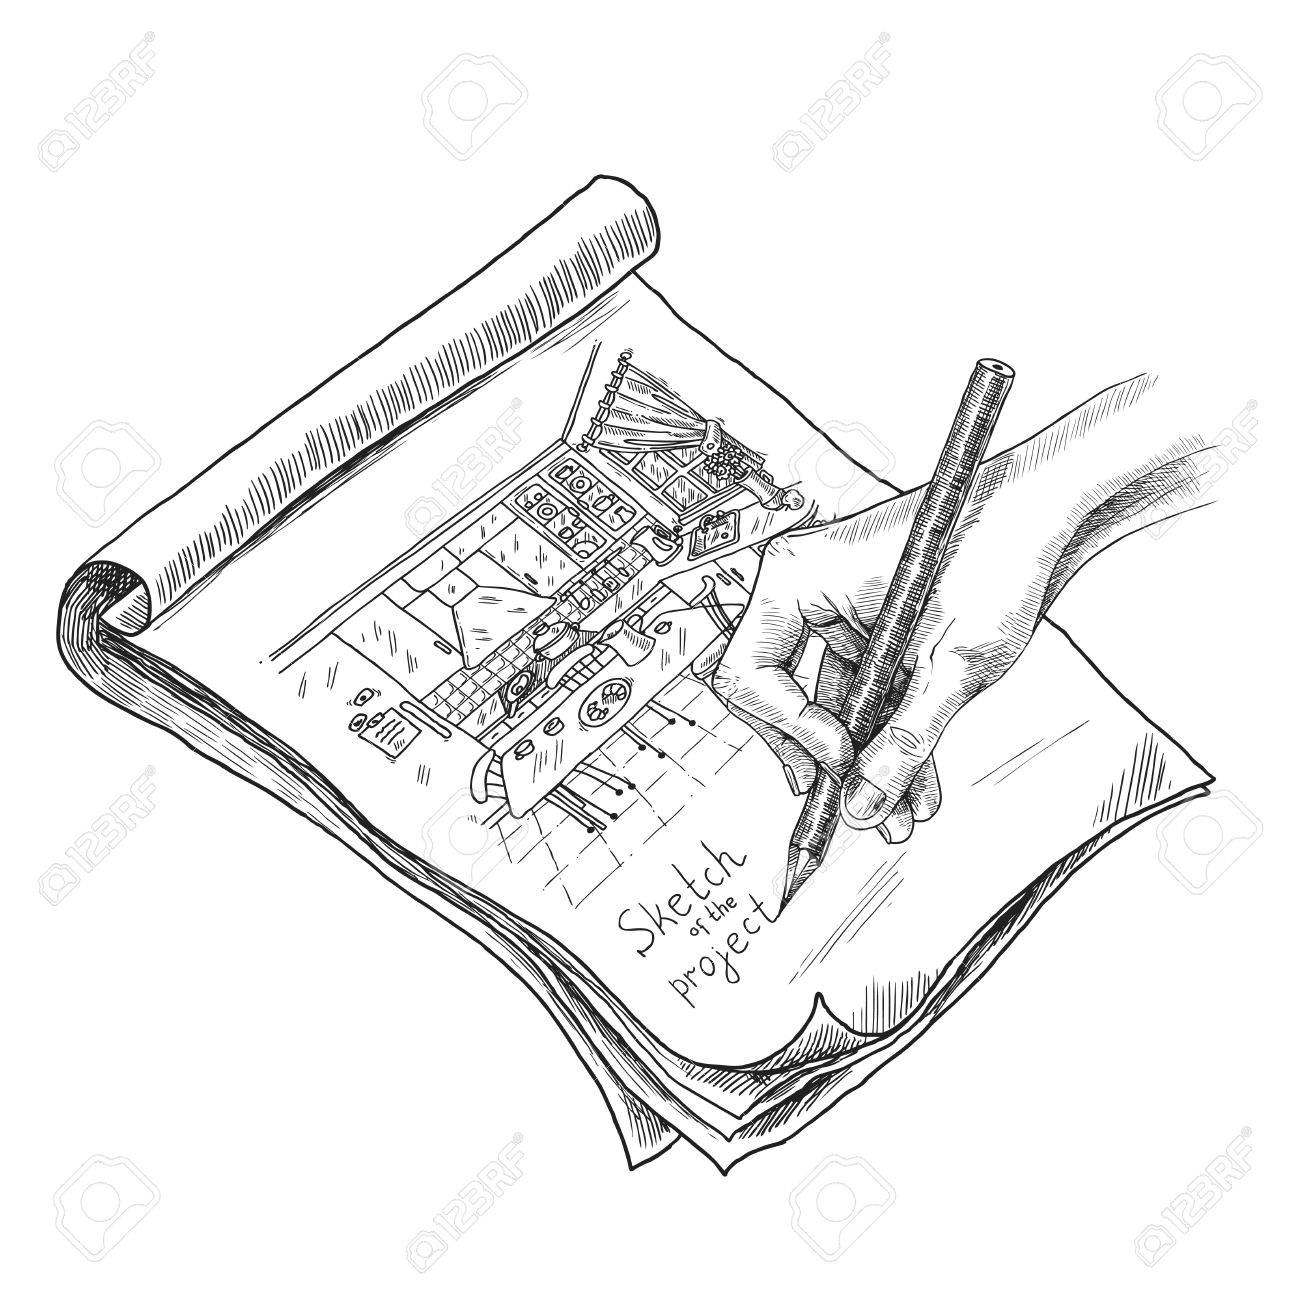 the best free notebook drawing images download from 342 free drawings of notebook at getdrawings